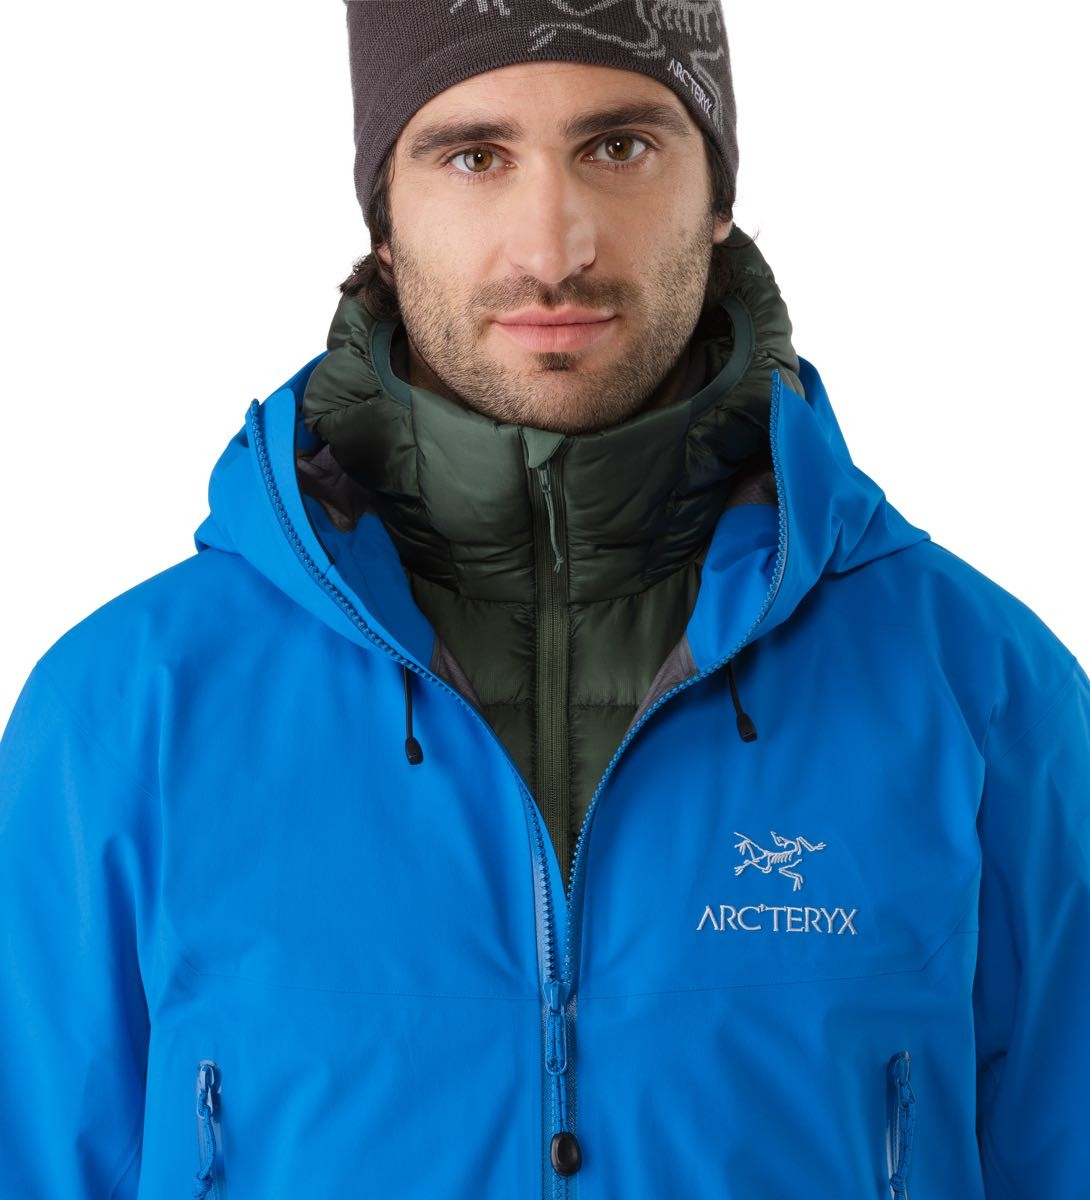 arc teryx tauri jacket review